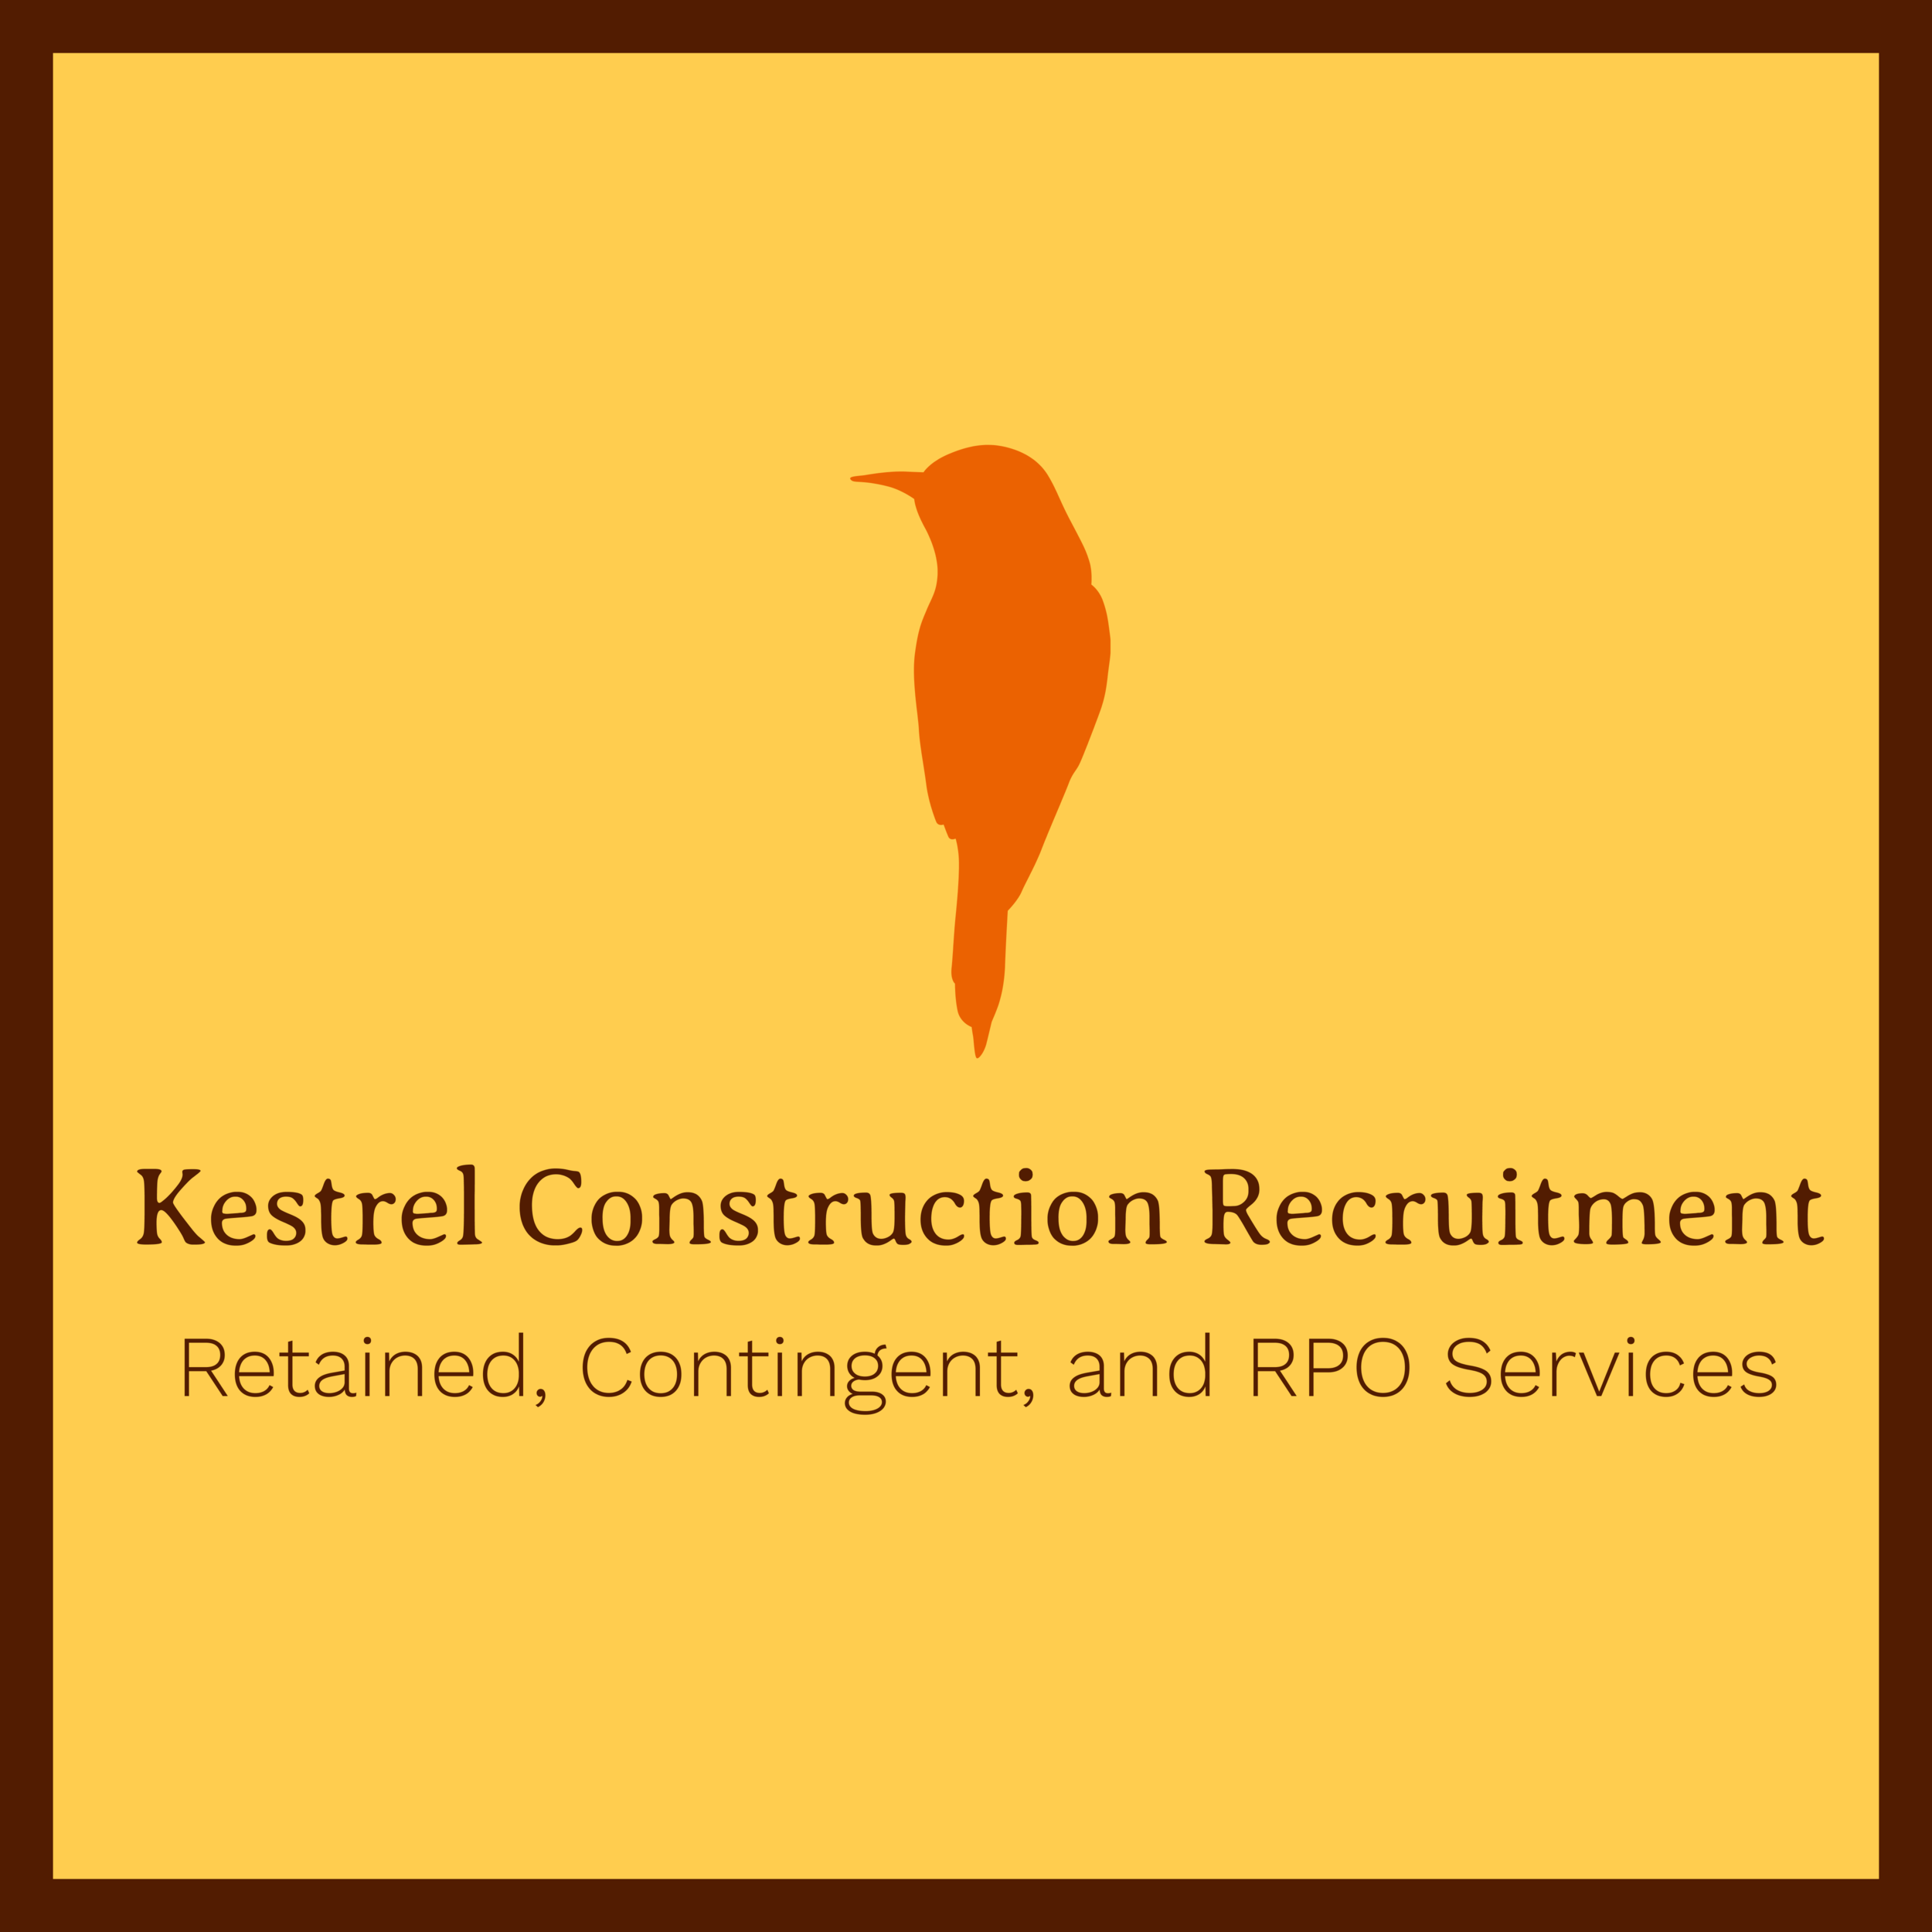 Kestrel Construction Recruitment - Kestrel Construction Recruitment™ provides construction management, general contracting, and architectural engineering firms with retained, contingent, and RPO talent acquisition services.